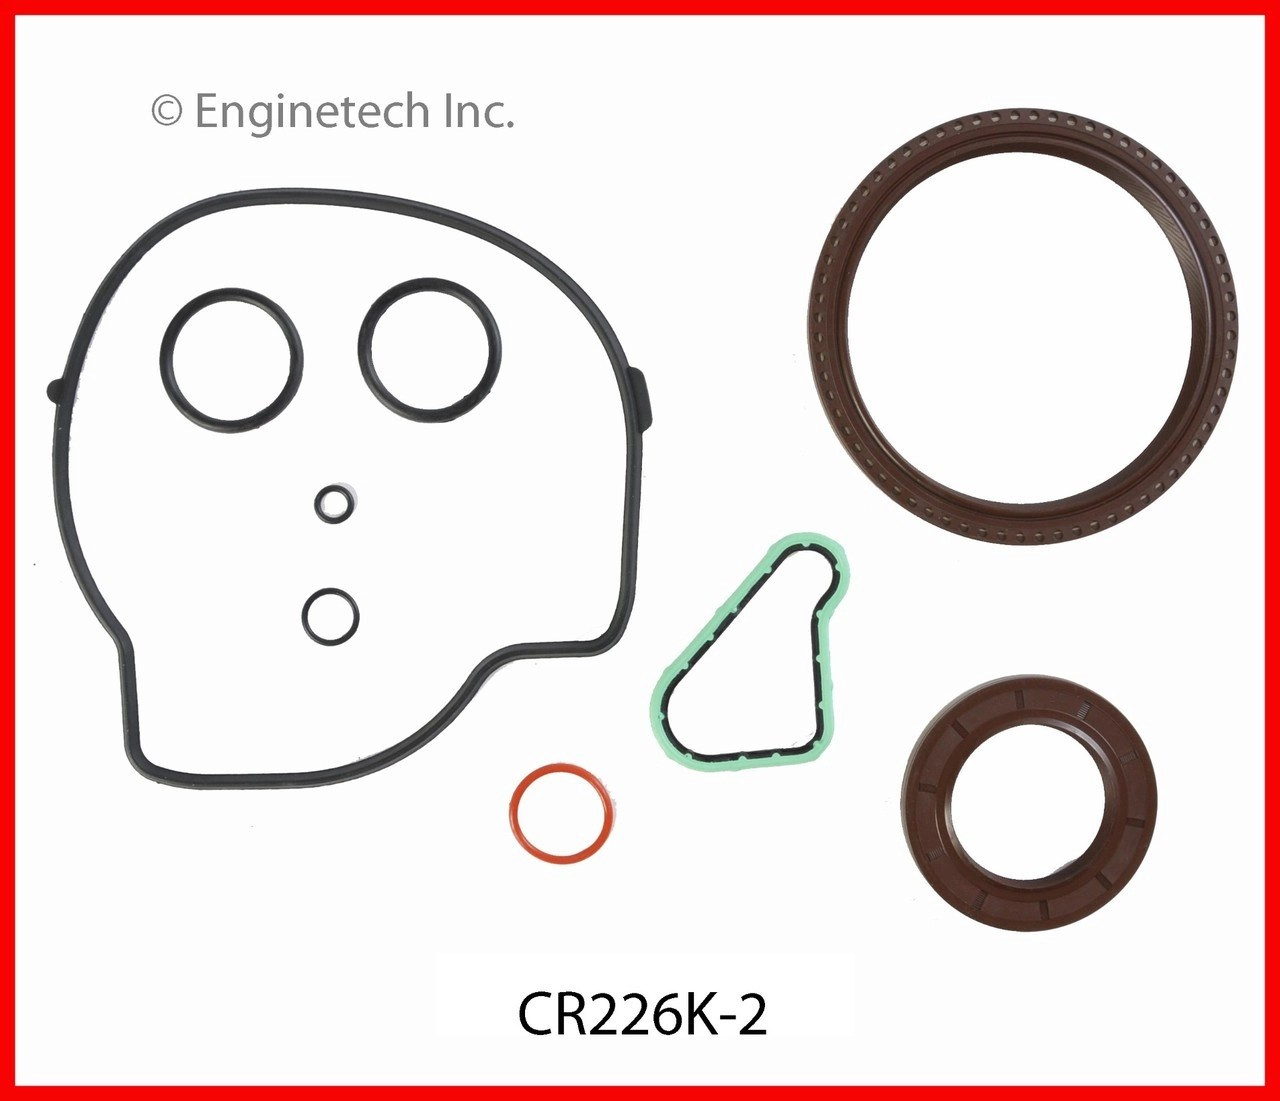 medium resolution of 2006 mitsubishi raider 3 7l engine gasket set cr226k 2 14